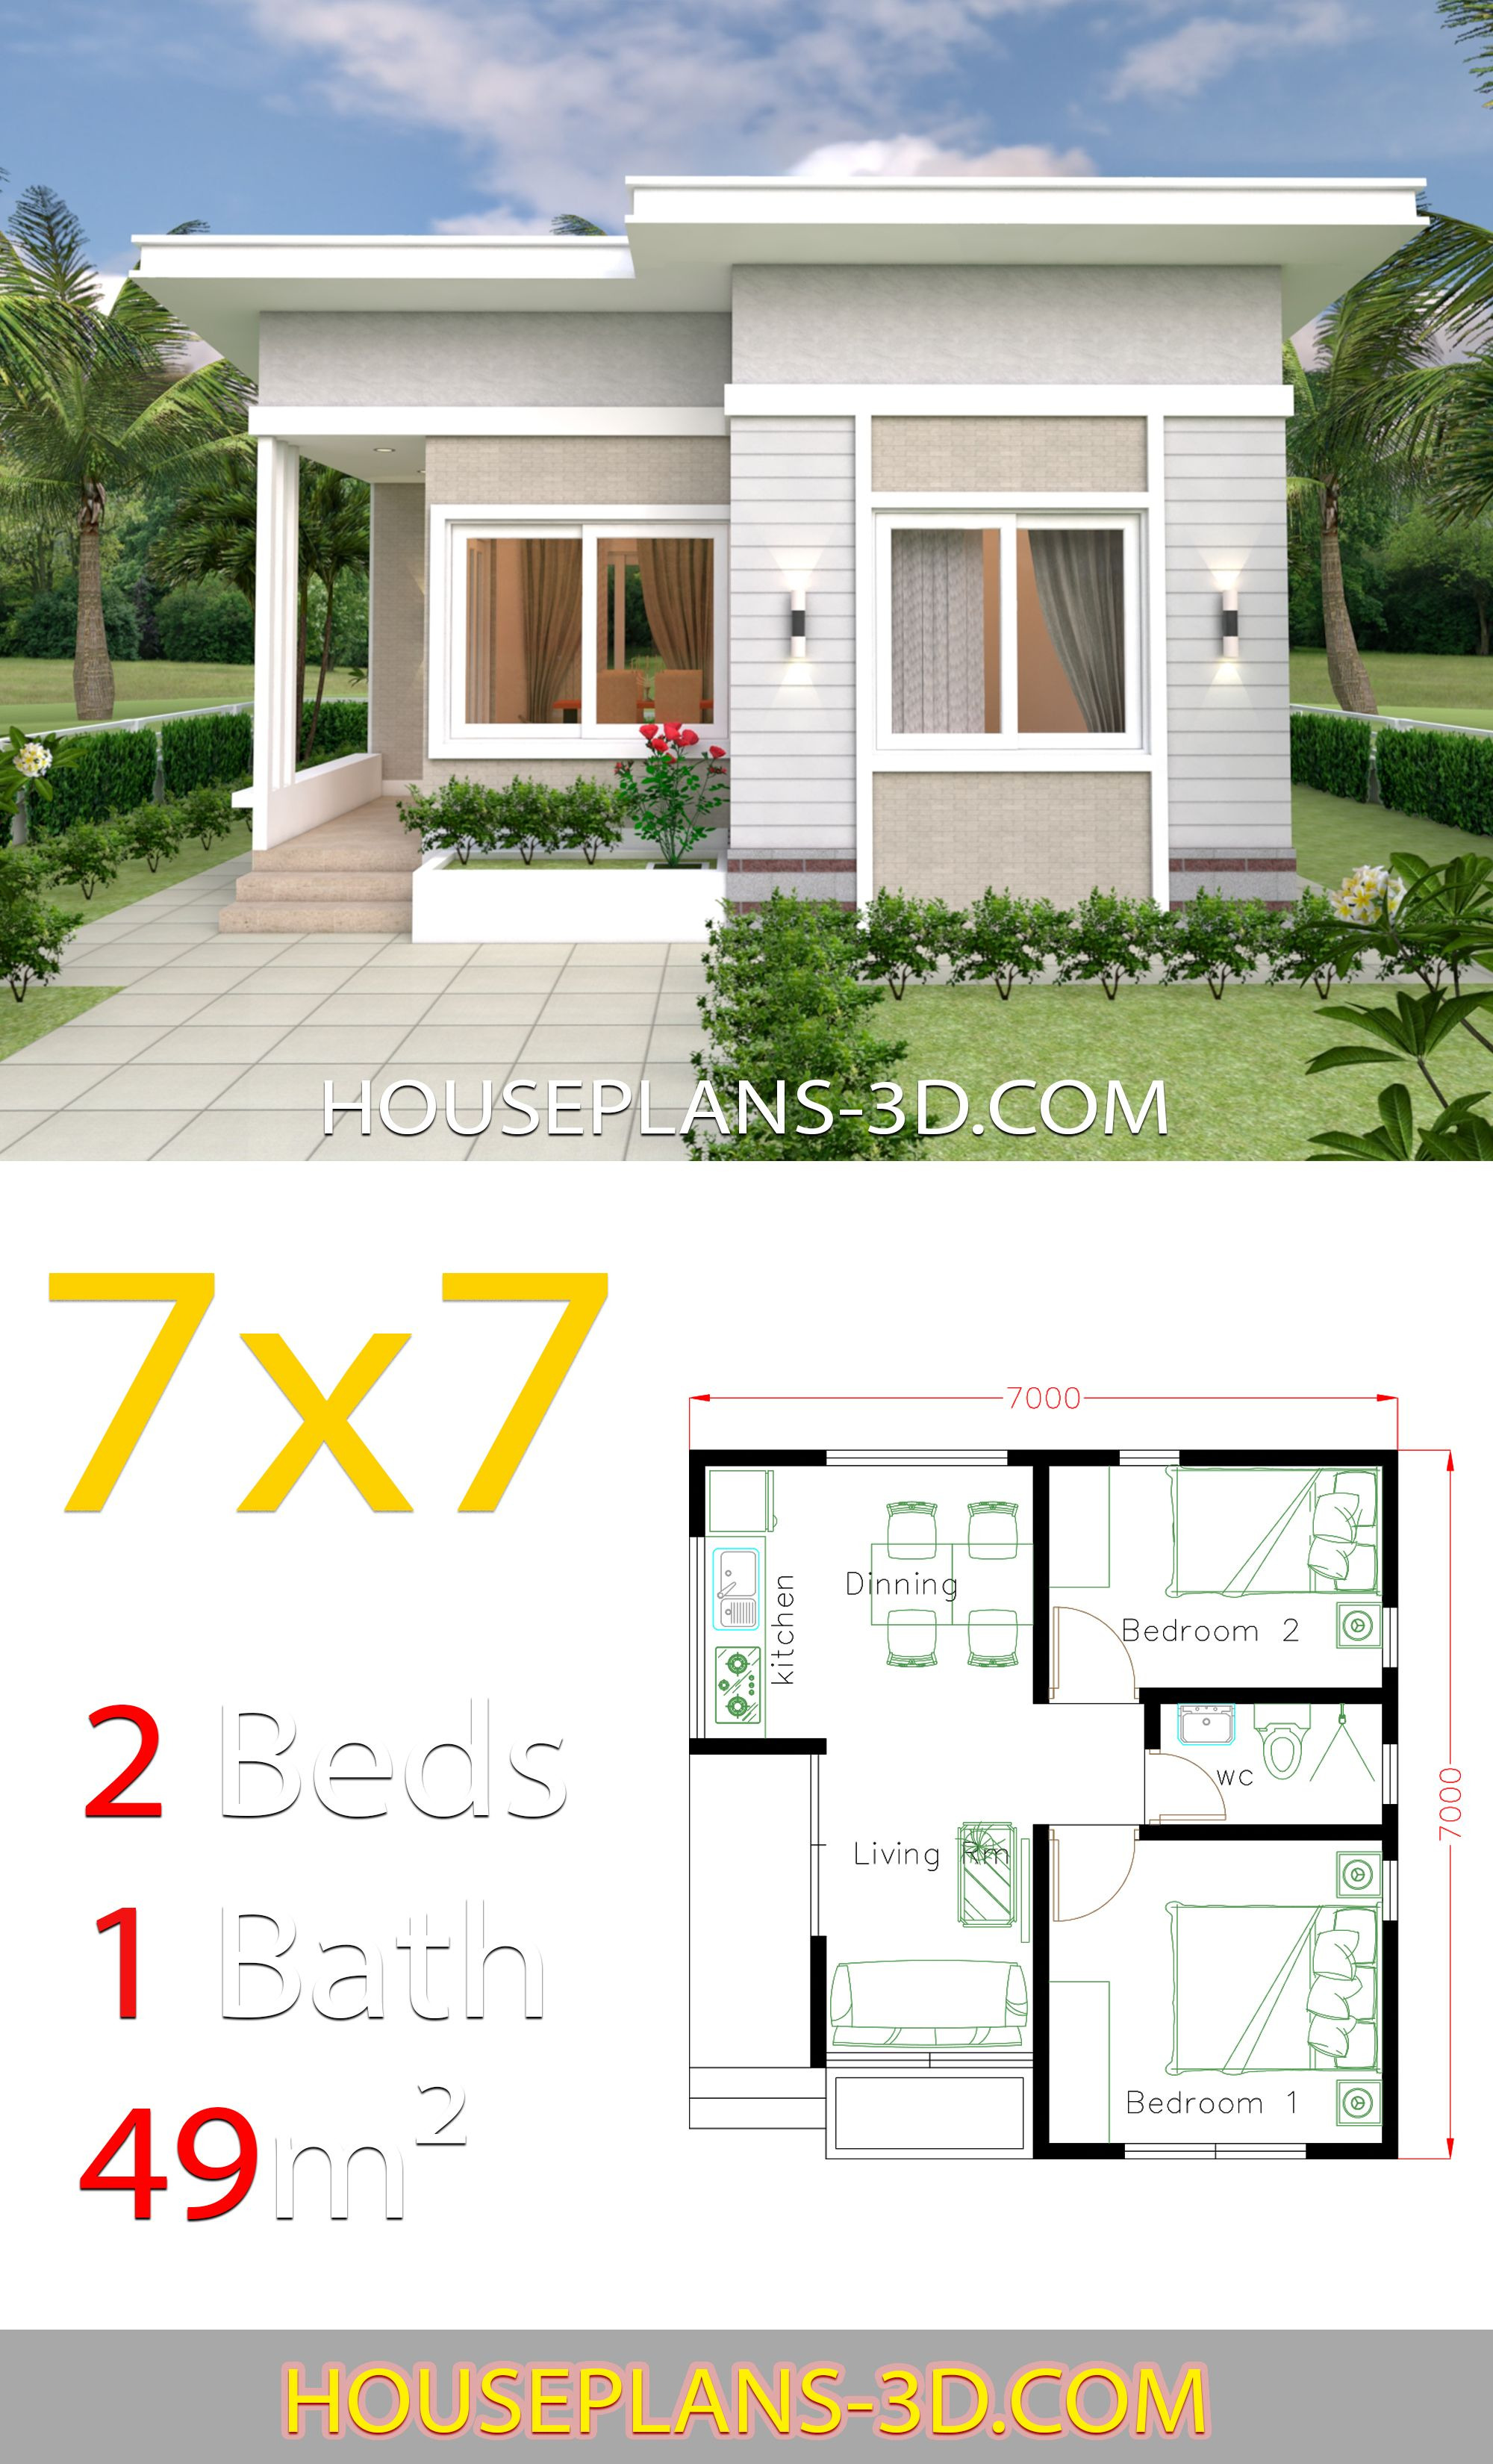 Modern Small House Plans Awesome Small House Design 7x7 with 2 Bedrooms Dengan Gambar